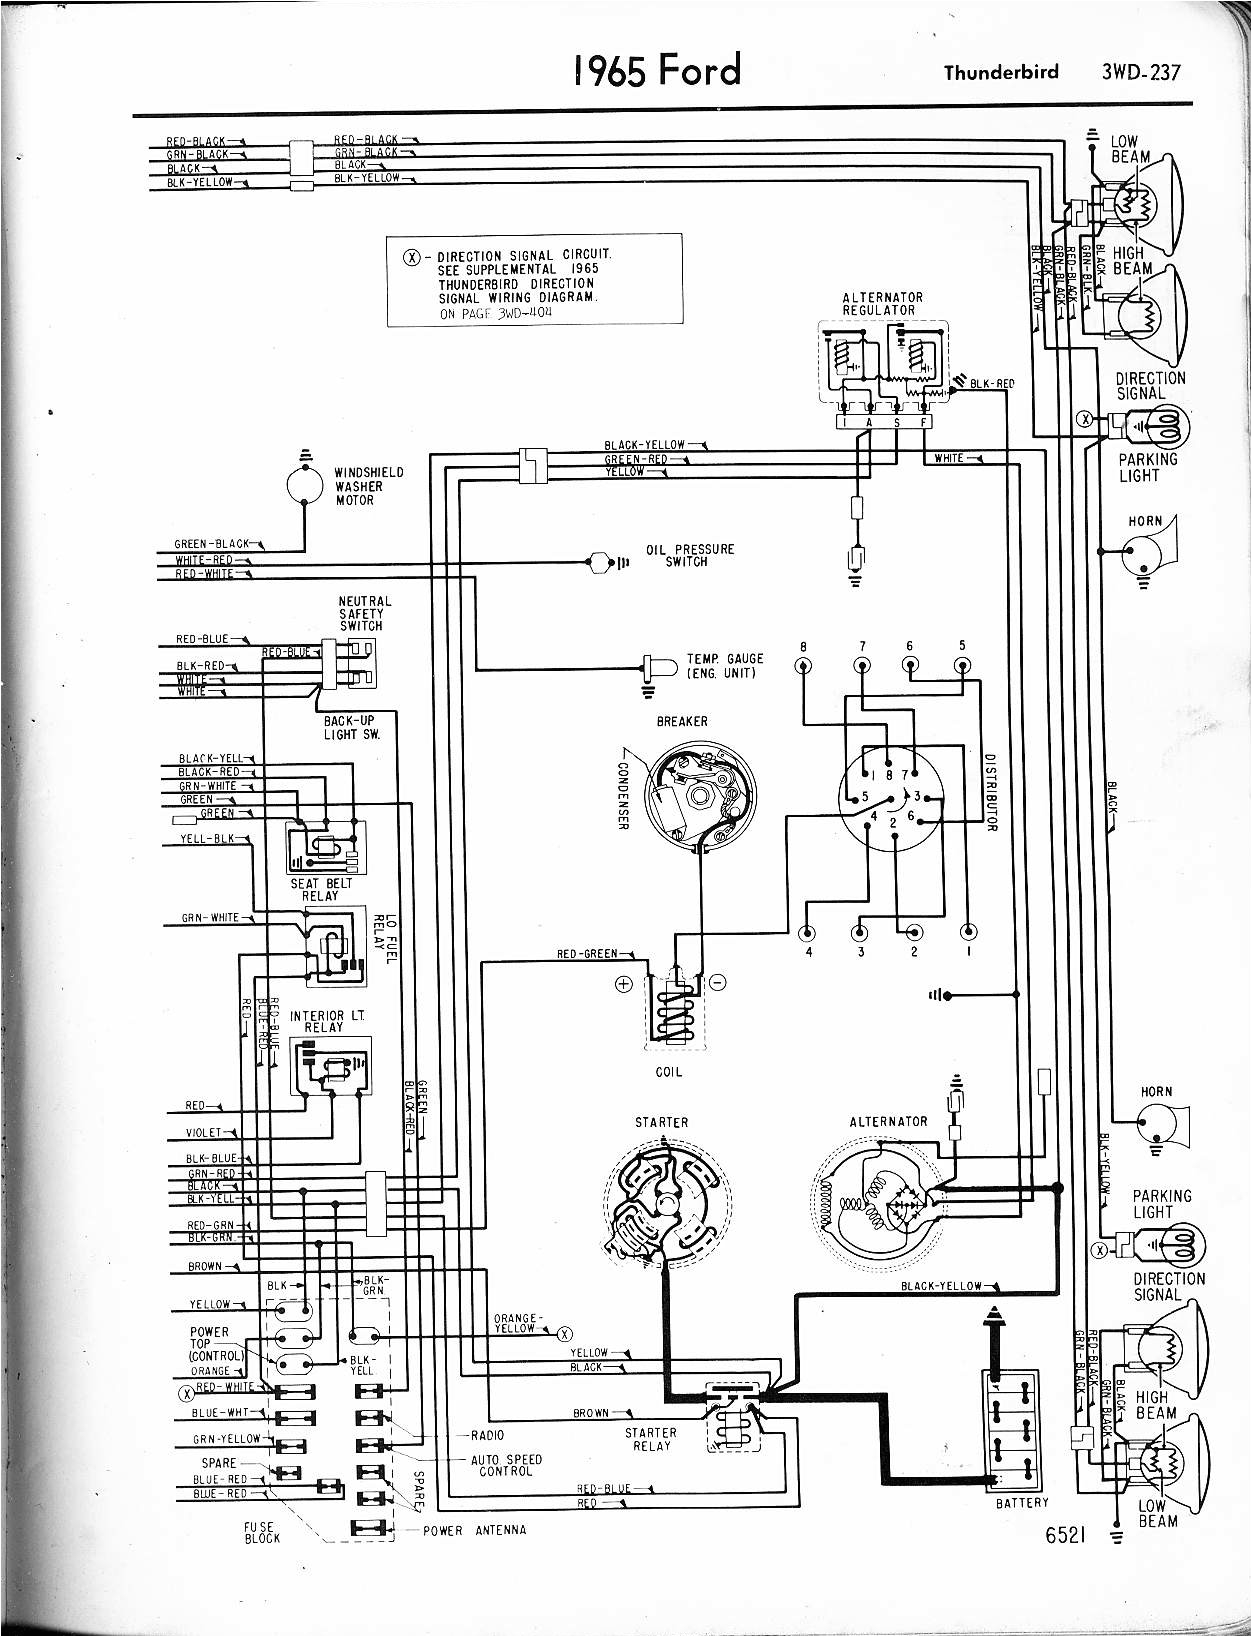 ford wiring diagrams lovely ford f250 wiring diagram electrical circuit ford f150 wiring